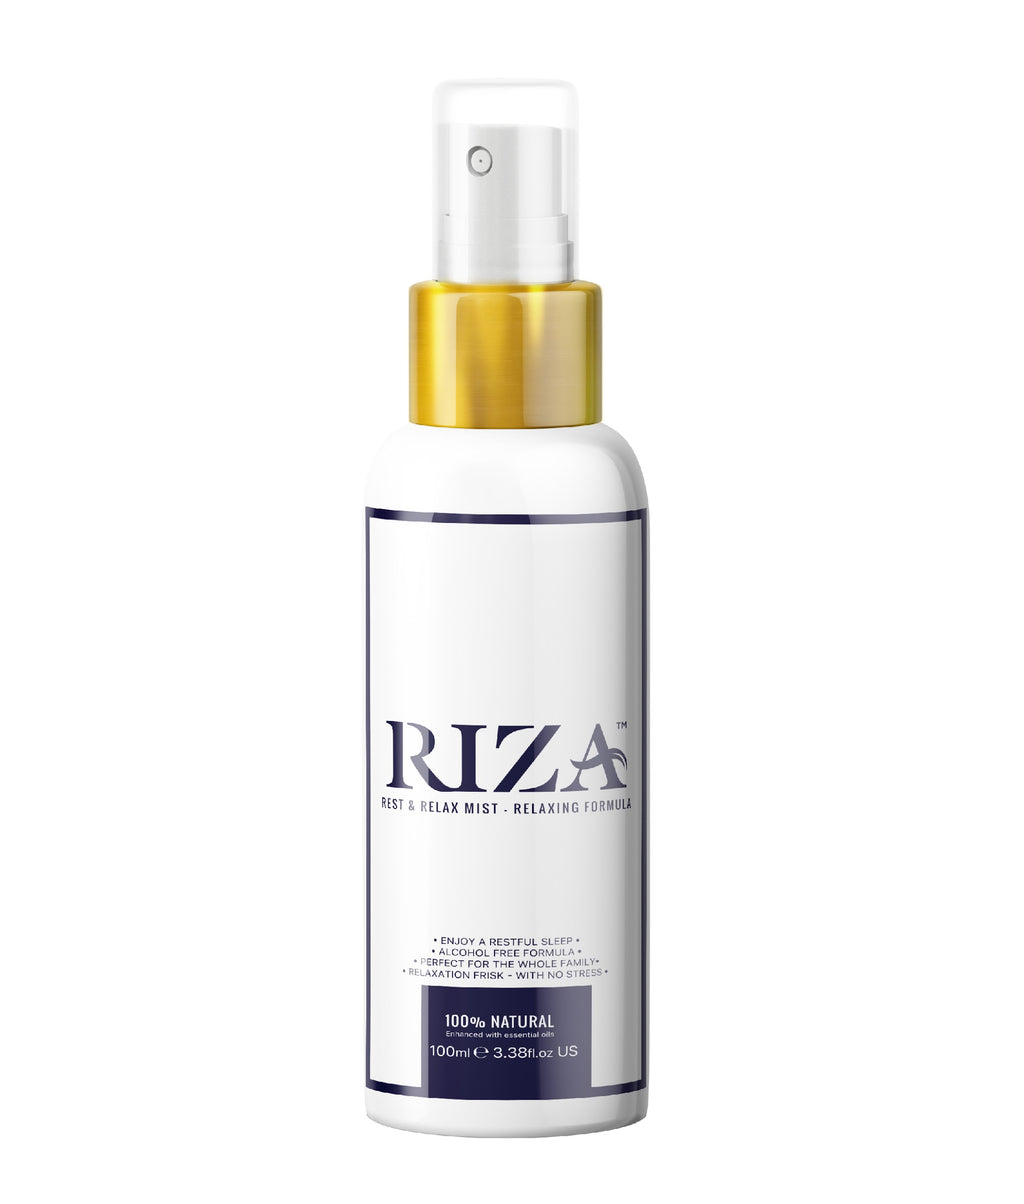 Riza Rest and Relax Mist - Relaxing Formula